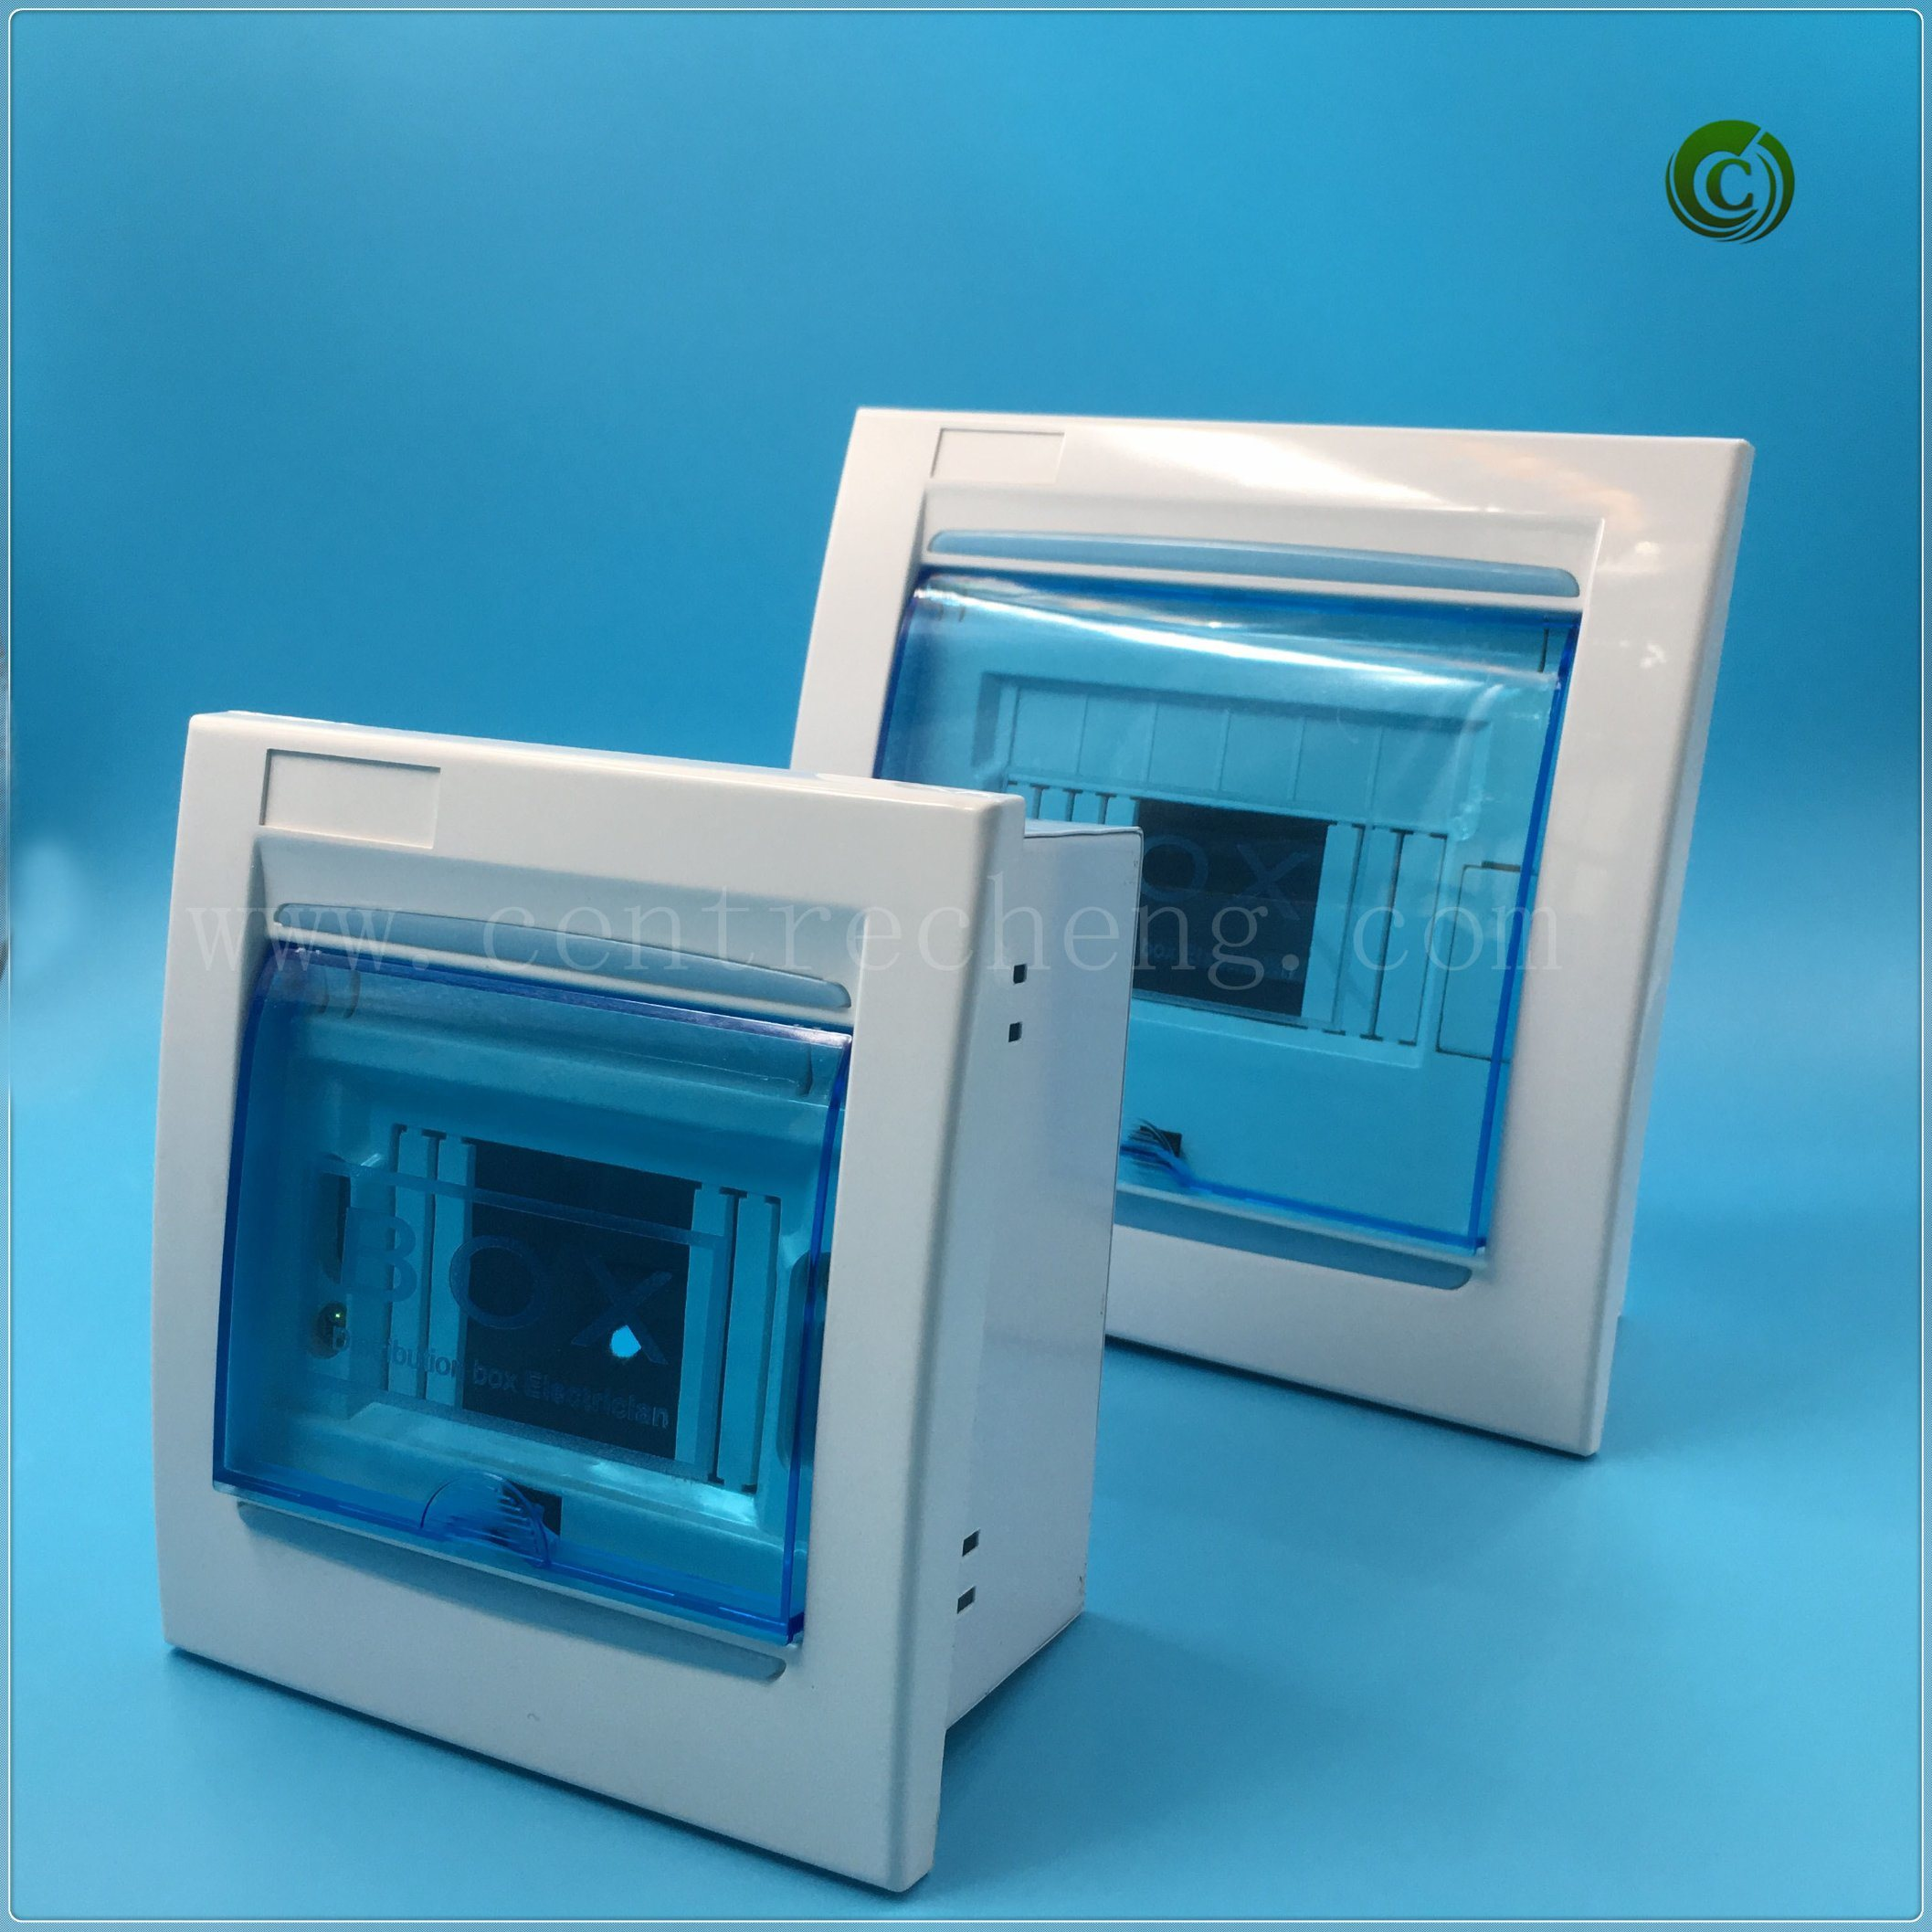 China Half Plastic Electrical Distribution Box, Power Box Electrical ...